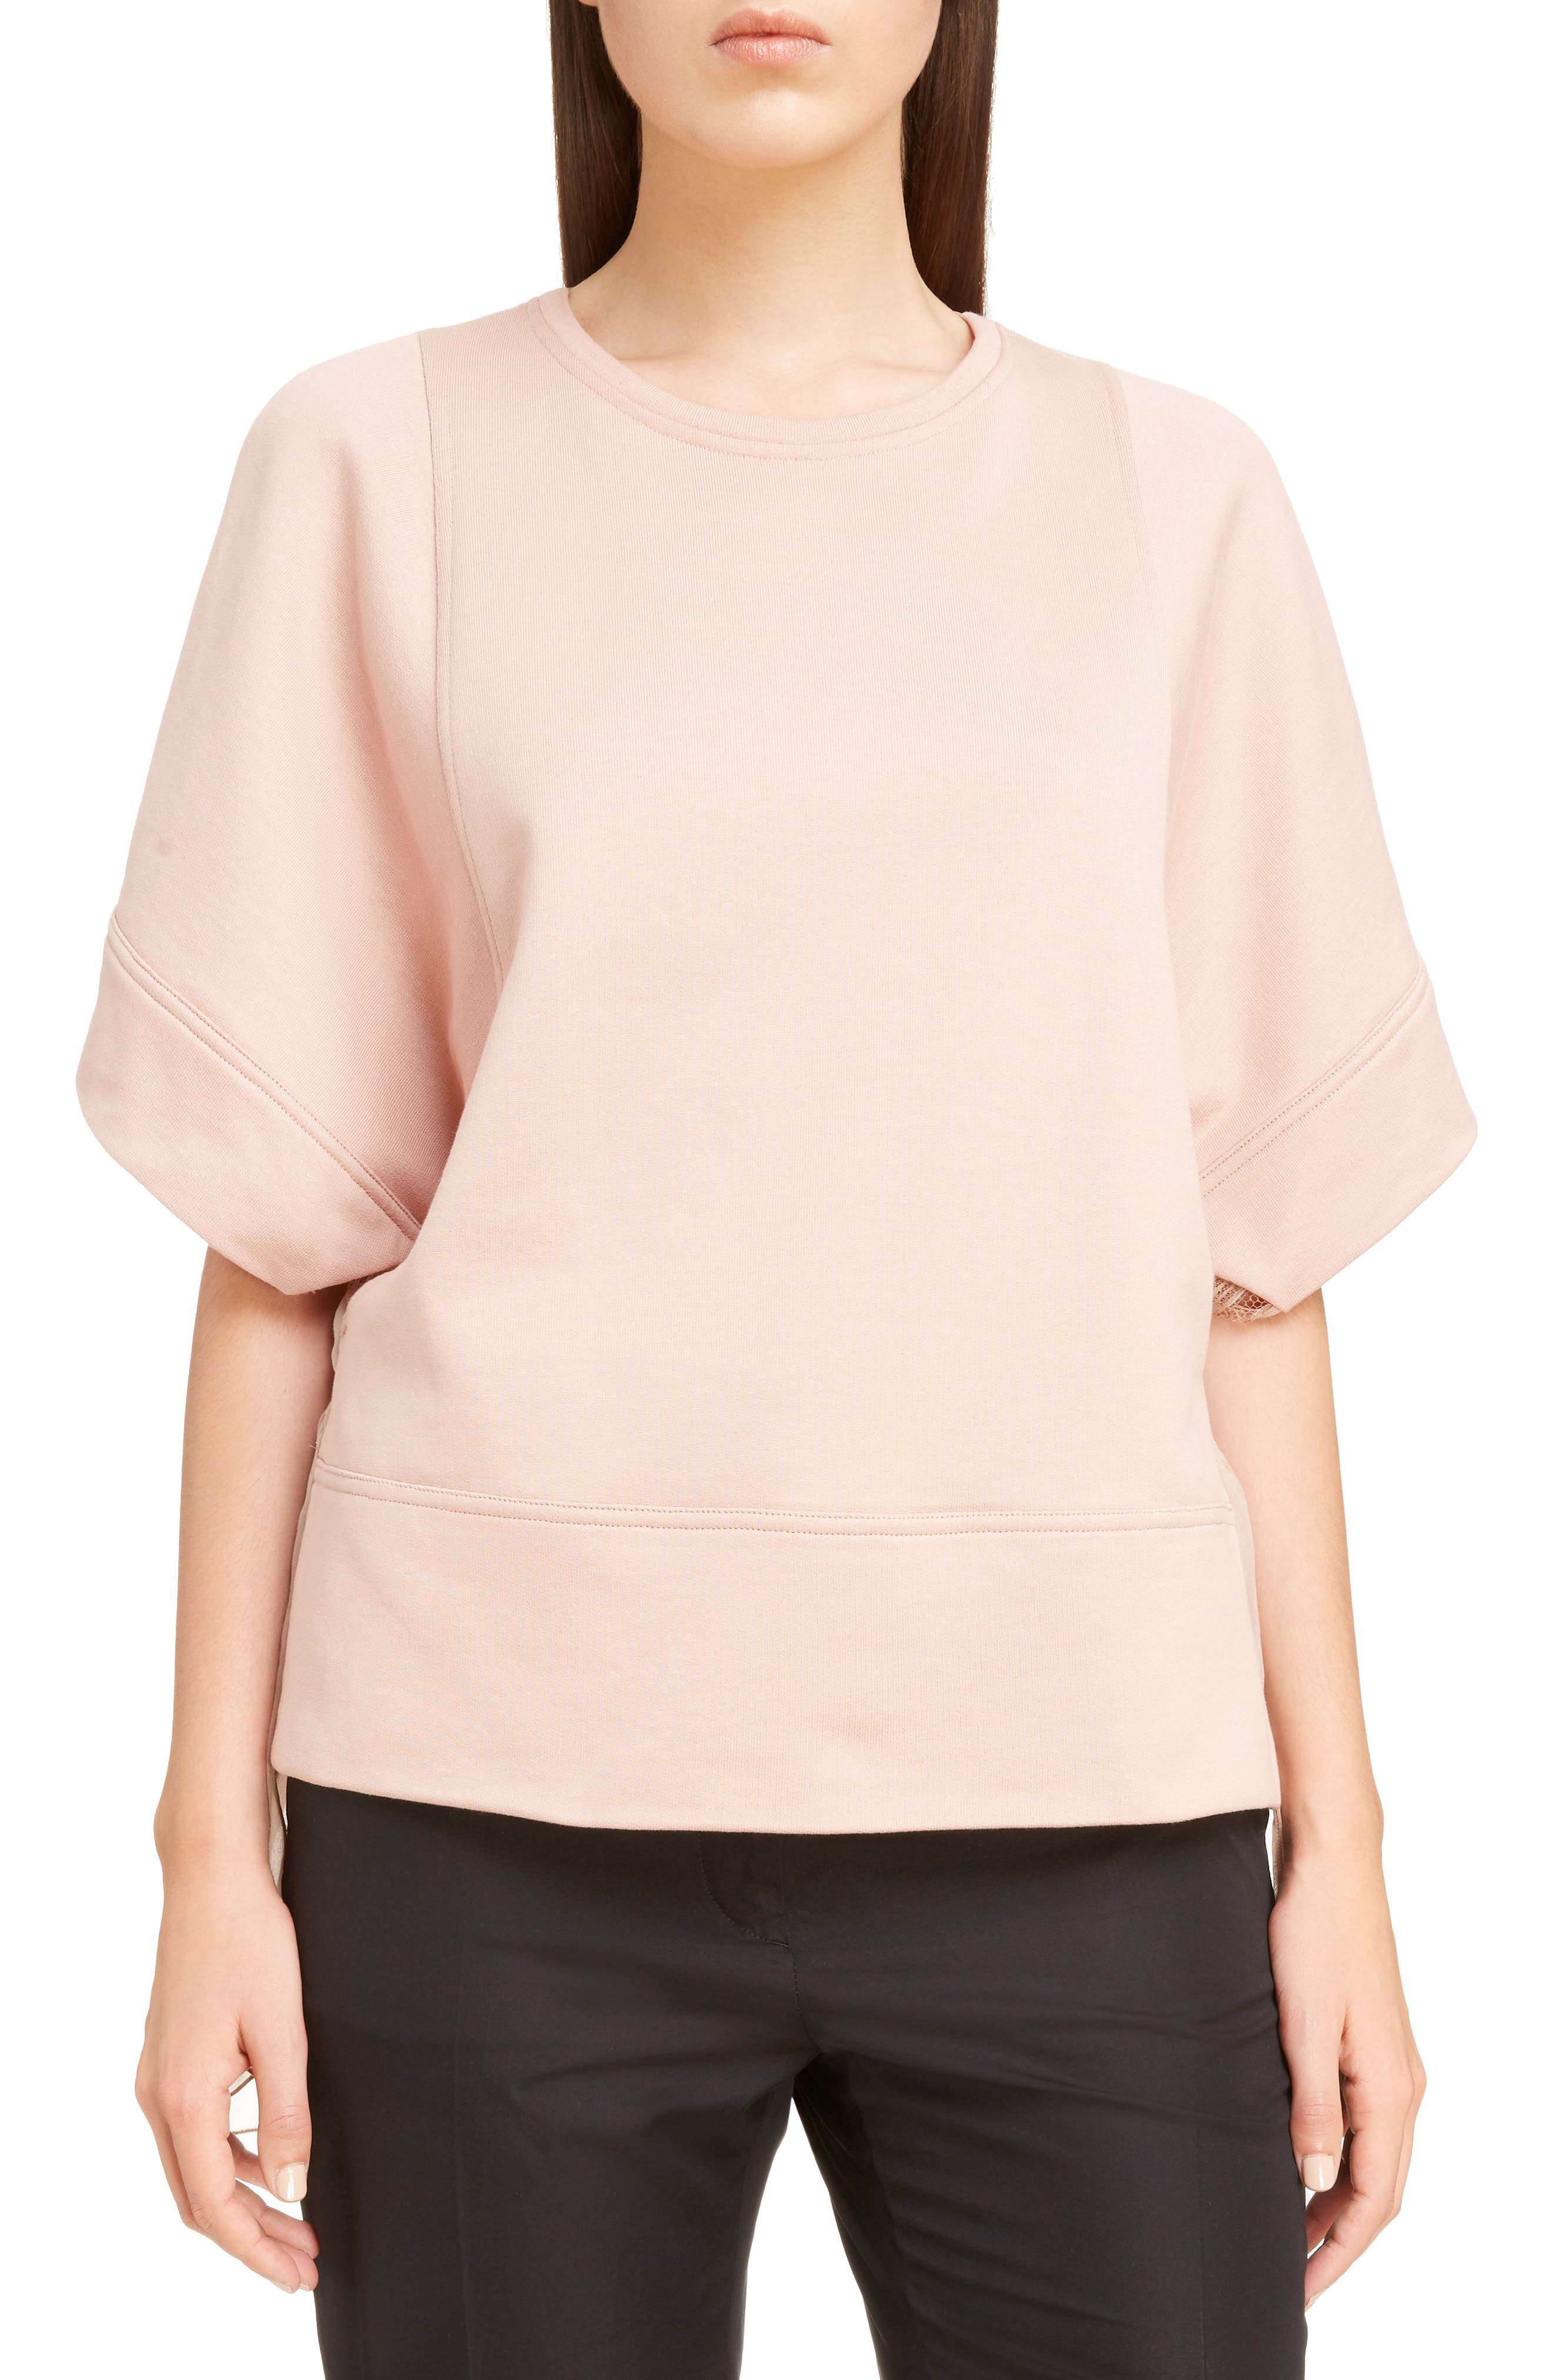 Nº21 Chiffon Back Sweatshirt,                             Main thumbnail 1, color,                             Nudo